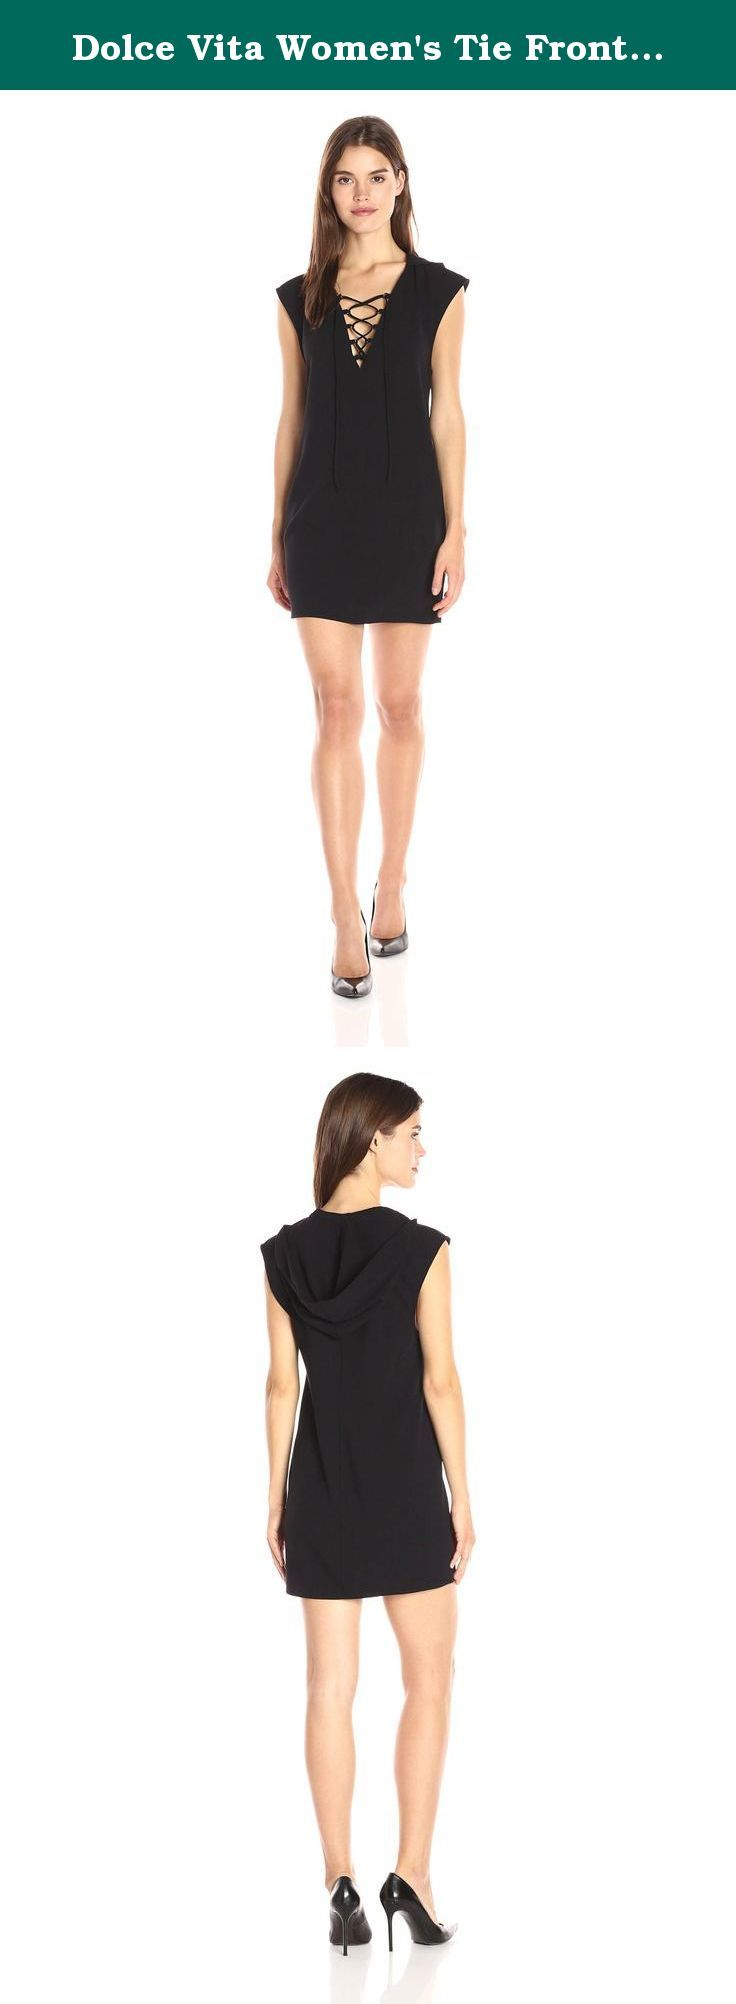 Dolce Vita Women's Tie Front Hooded Logan Dress, Black, L. Hooded lace-up front sleeveless knit dress by Dolce Vita.